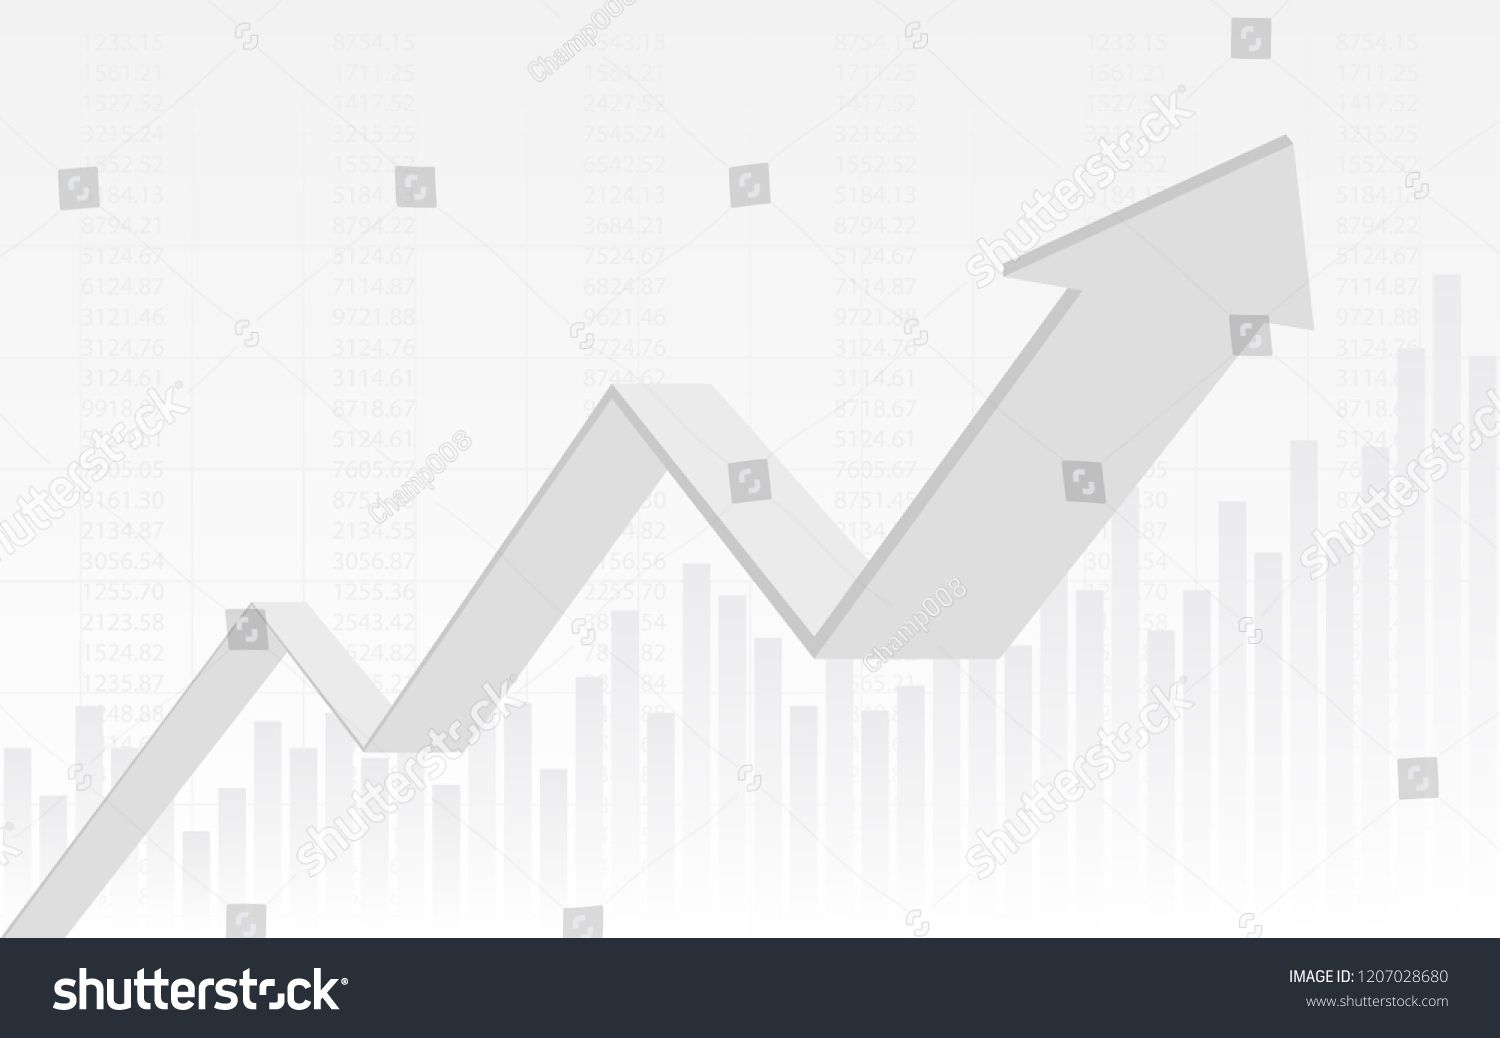 Abstract Financial Chart With 3d Uptrend Line Graph Arrow And Numbers In Stock Market On Gradient White Color Background Financial Charts Line Graphs Graphing